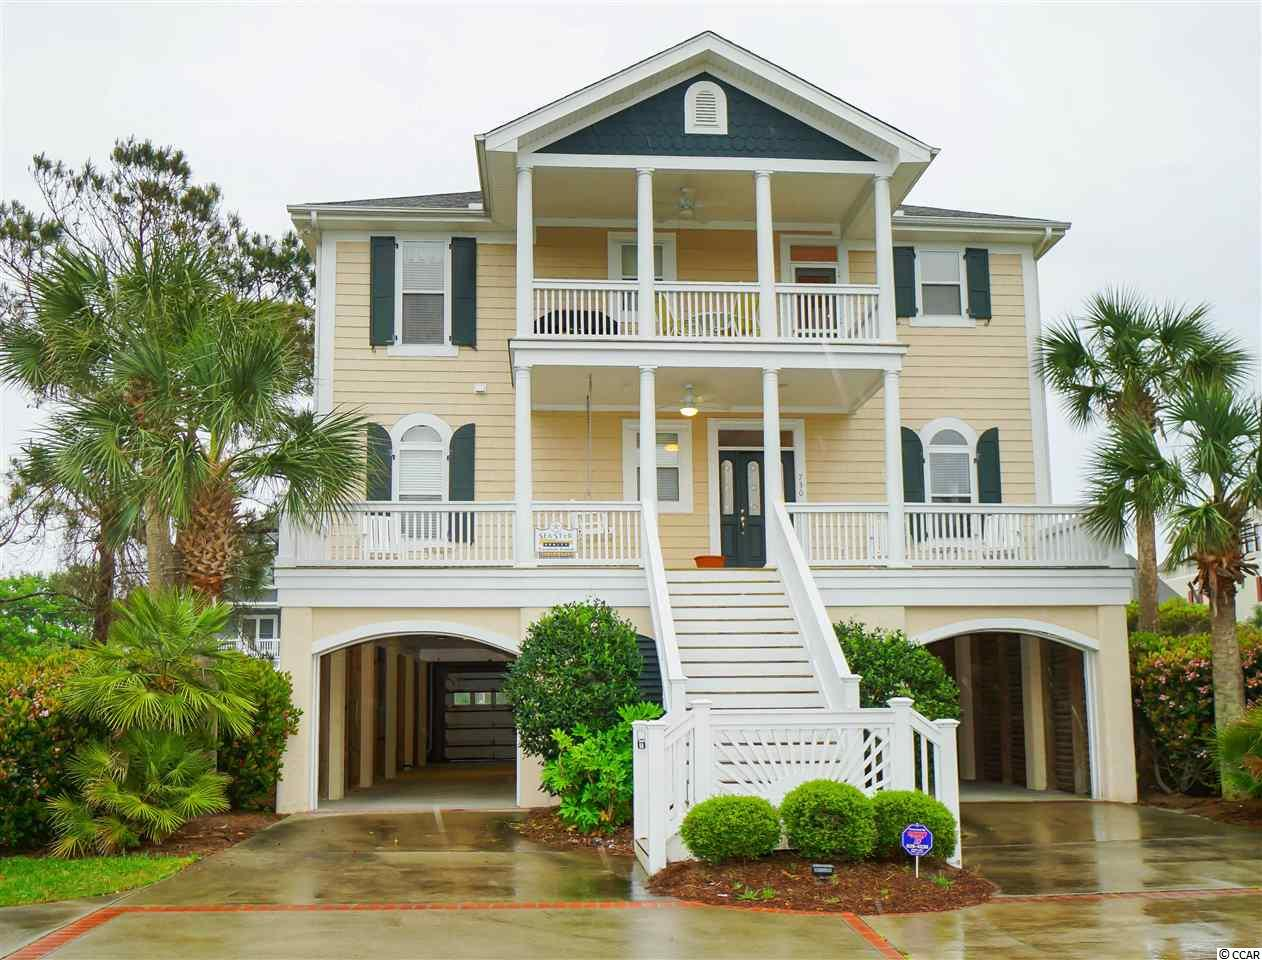 This 6-bedroom, 6.5-bathroom home is situated on a huge ocean view lot in the very desirable North Litchfield Beach community.  Easy beach access just across the street, only a few steps away.  The inverted floor plan, expansive screened porches and rooftop crows nest maximizes ocean views from this home.  Features include six ensuite bedrooms, hardwood floors, crown molding, wainscoting, tray ceiling, elevator, wet-bar, fireplace, 5 porches, and much more.  Recent updates: 2016 - new HVAC units, 2019 -exterior painted, new ice maker at wet bar and new refrigerator.  Being sold fully furnished.  Currently used as a second home and income producing vacation rental.  Covered and driveway parking for 6+ vehicles as well as a boat.  Large lot that should allow plenty of room to accommodate a pool addition.